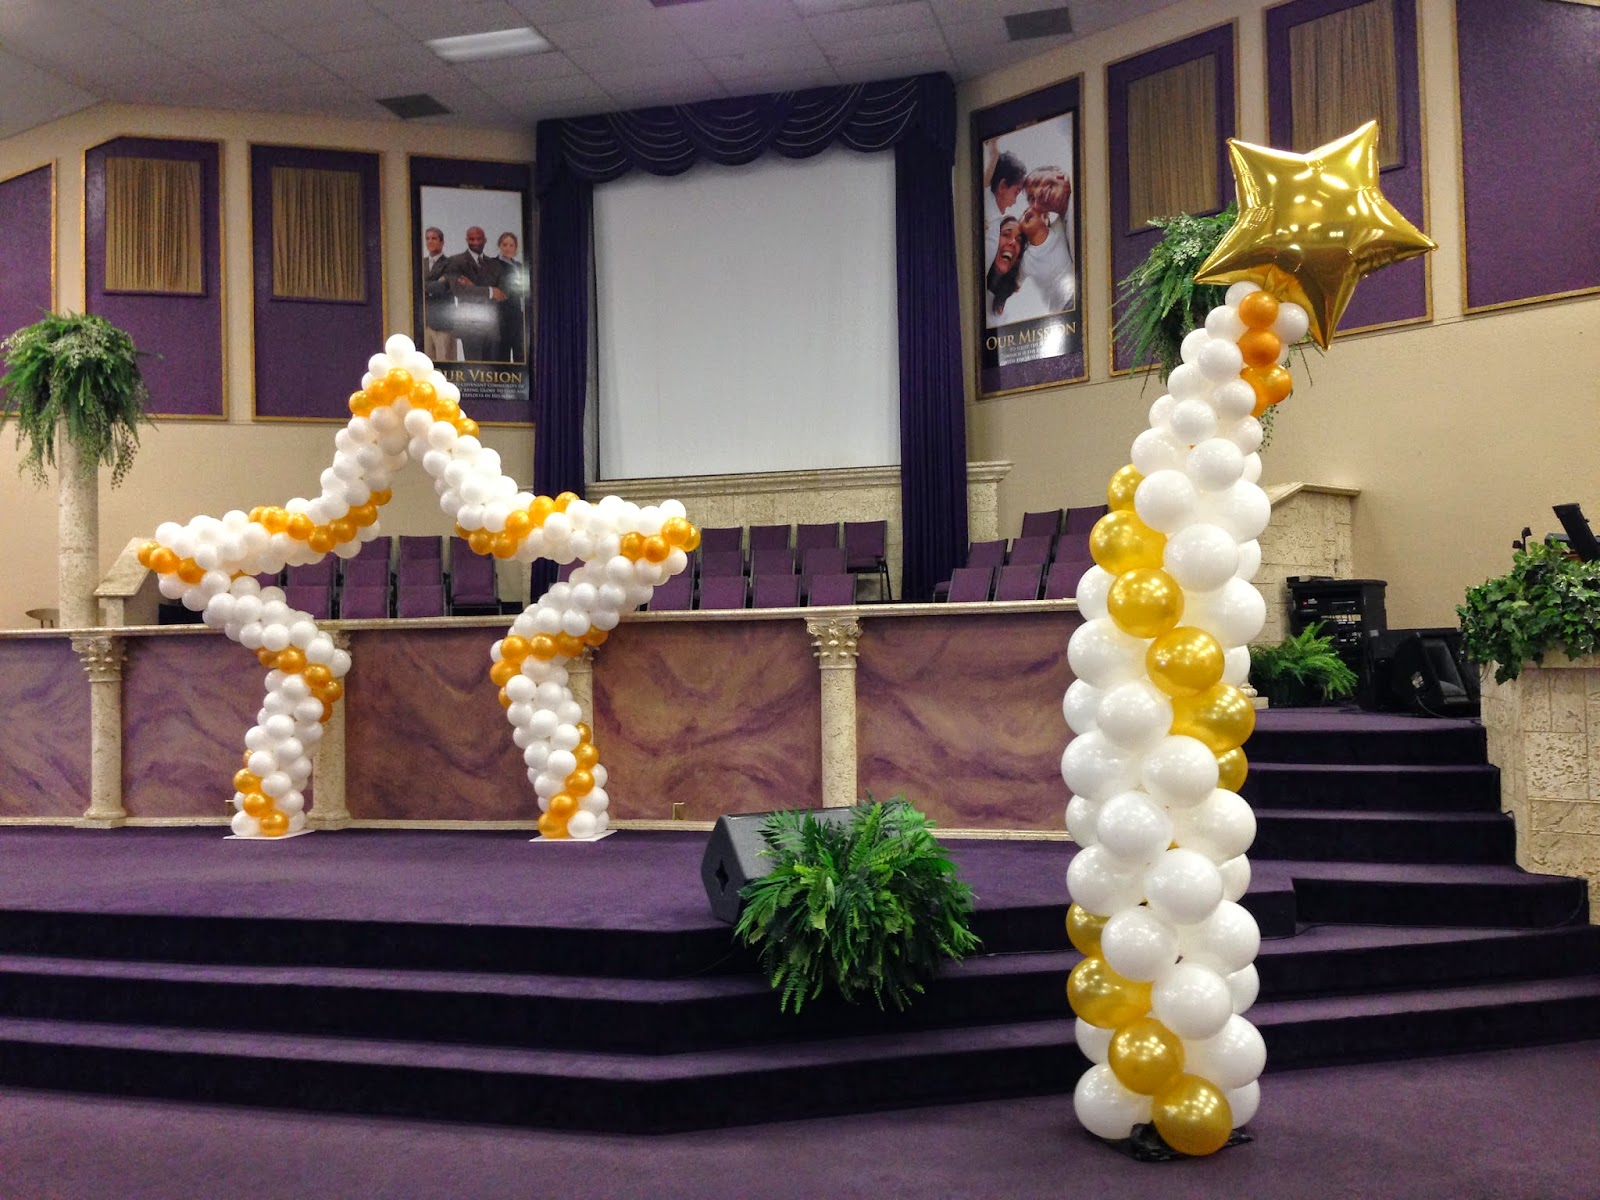 Balloon column with star and balloon arch with star shape